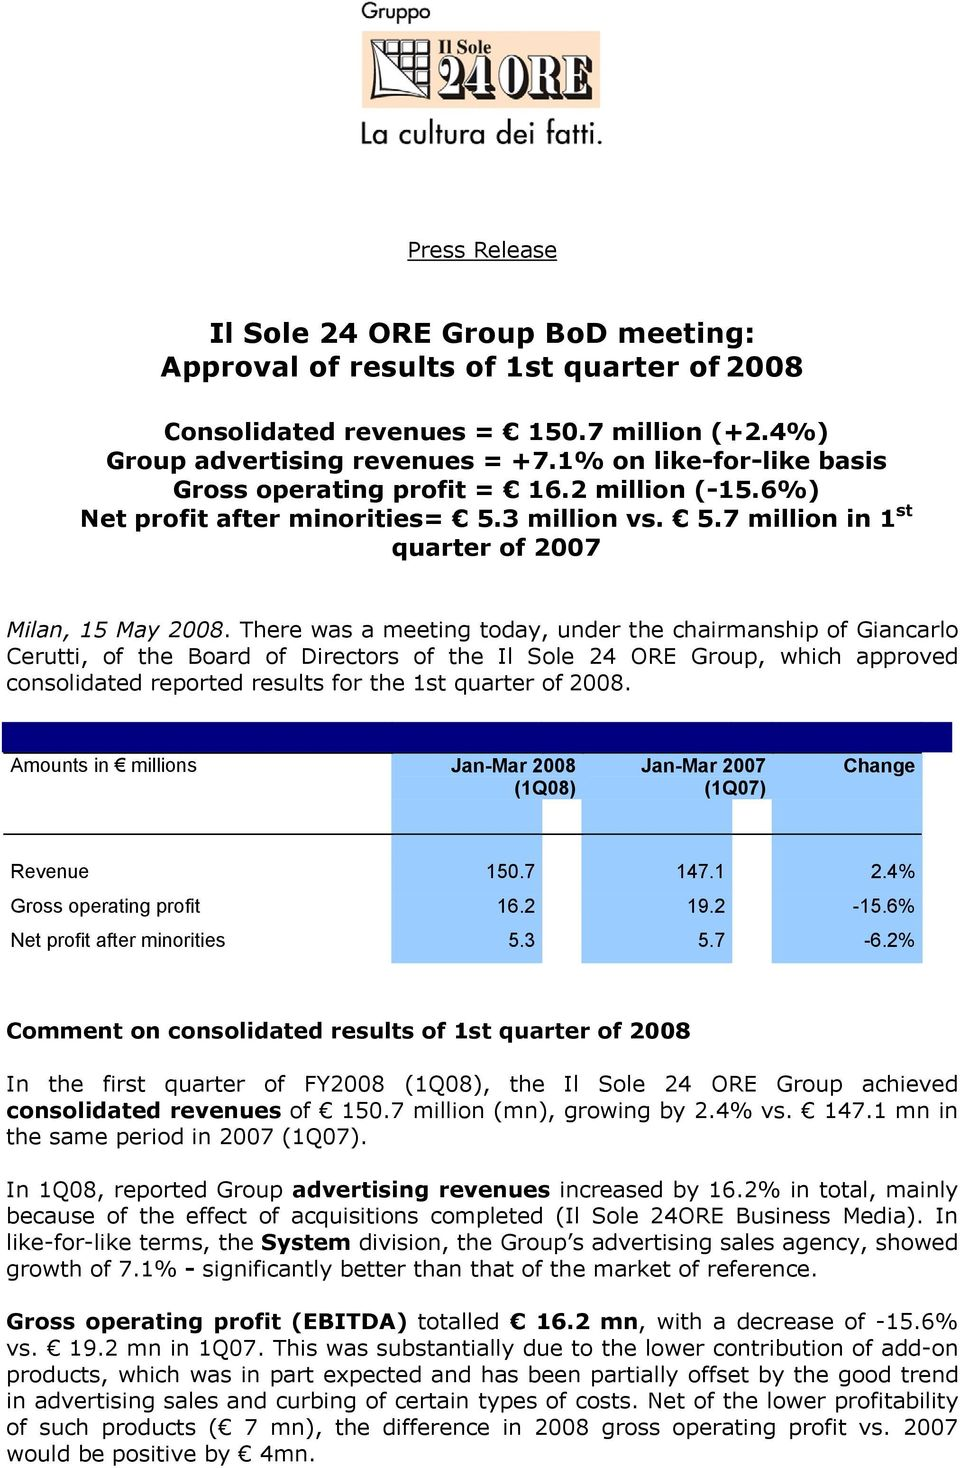 There was a meeting today, under the chairmanship of Giancarlo Cerutti, of the Board of Directors of the Il Sole 24 ORE Group, which approved consolidated reported results for the 1st quarter of 2008.